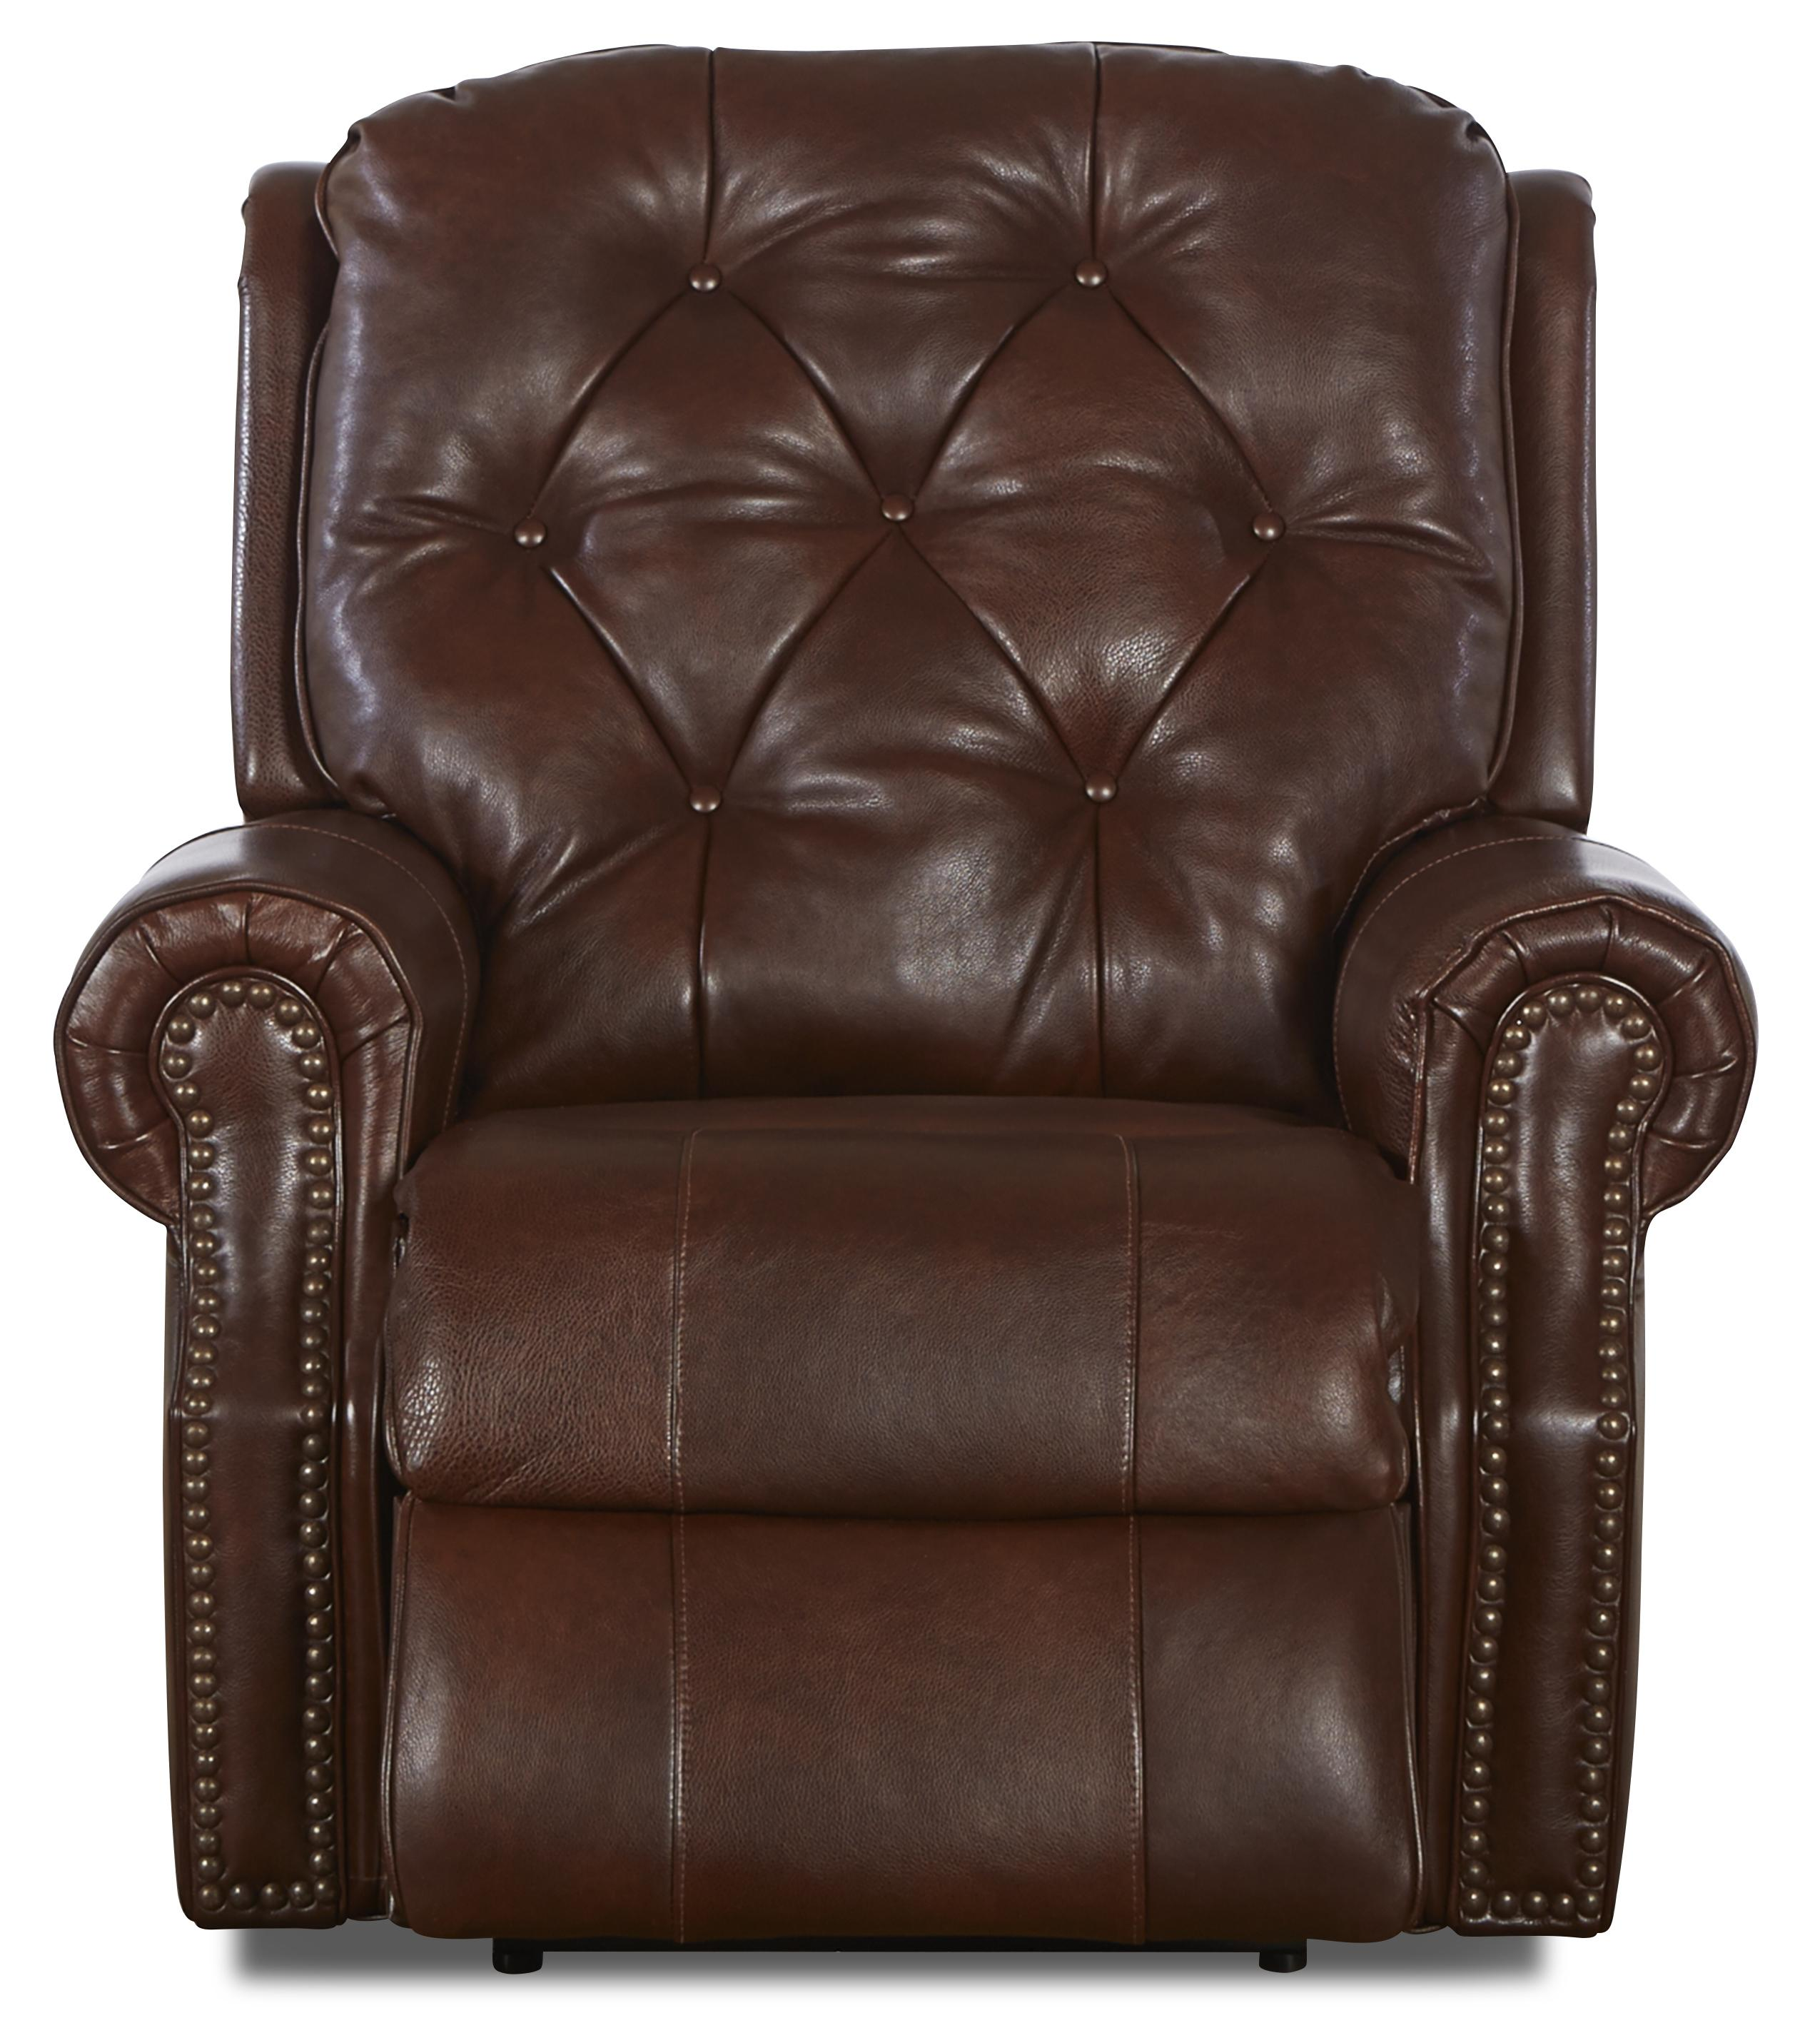 Traditional Swivel Rocking Recliner with Attached Back Pillows and Outside Handle Activation  sc 1 st  Wolf Furniture & Traditional Swivel Rocking Recliner with Attached Back Pillows and ... islam-shia.org